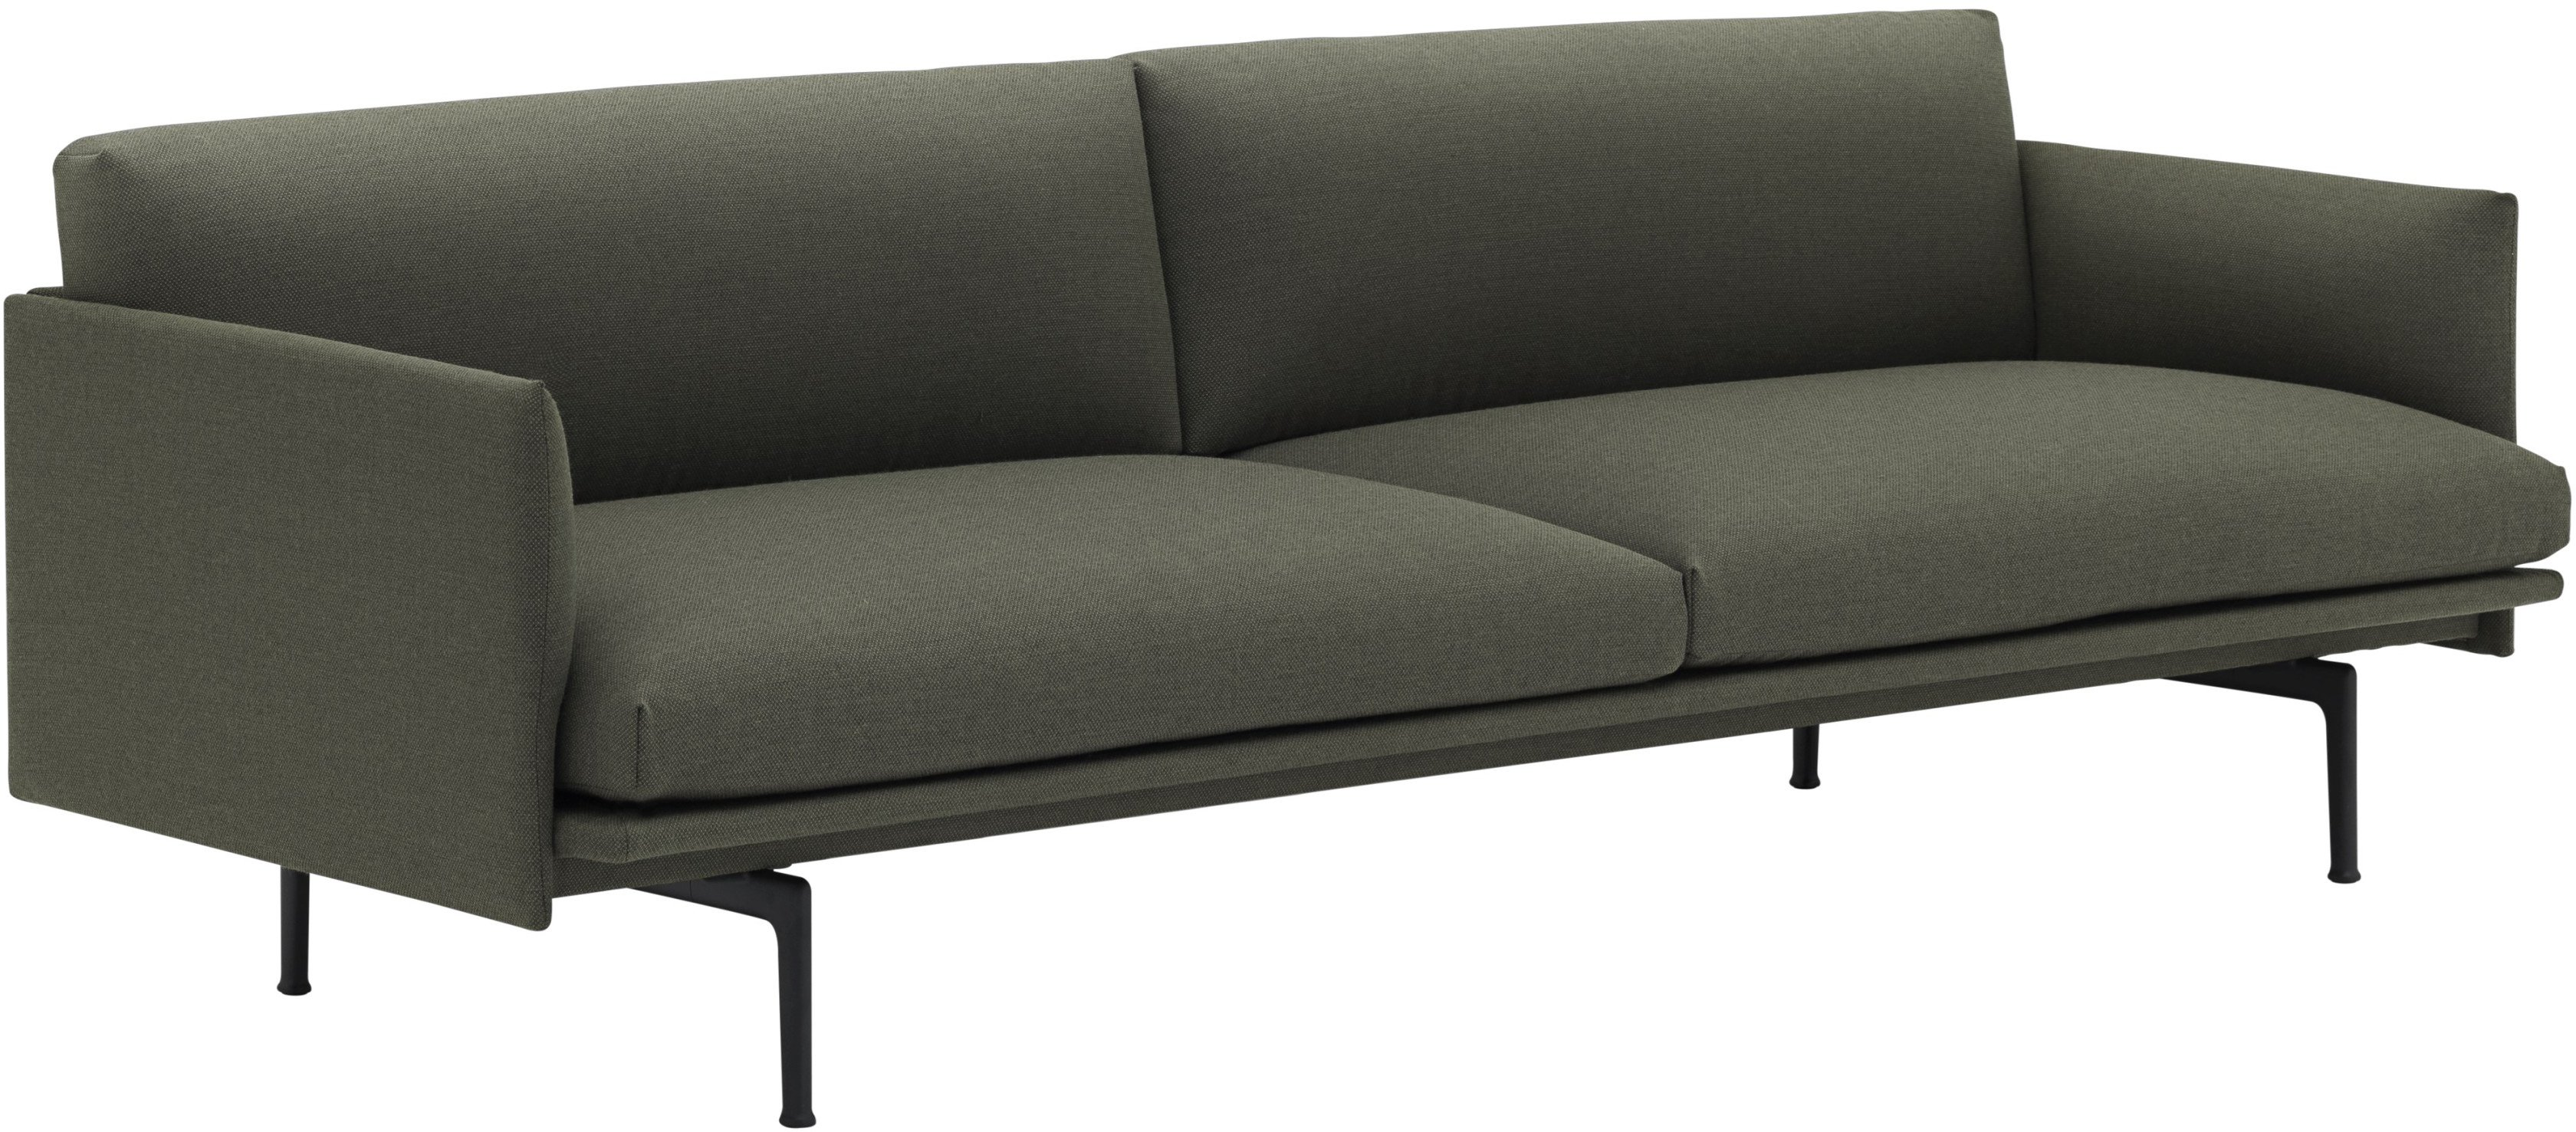 Sofa Outline 2-seater Black/ Remix 163 by Anderssen & Voll for Muuto - 496437 - photo